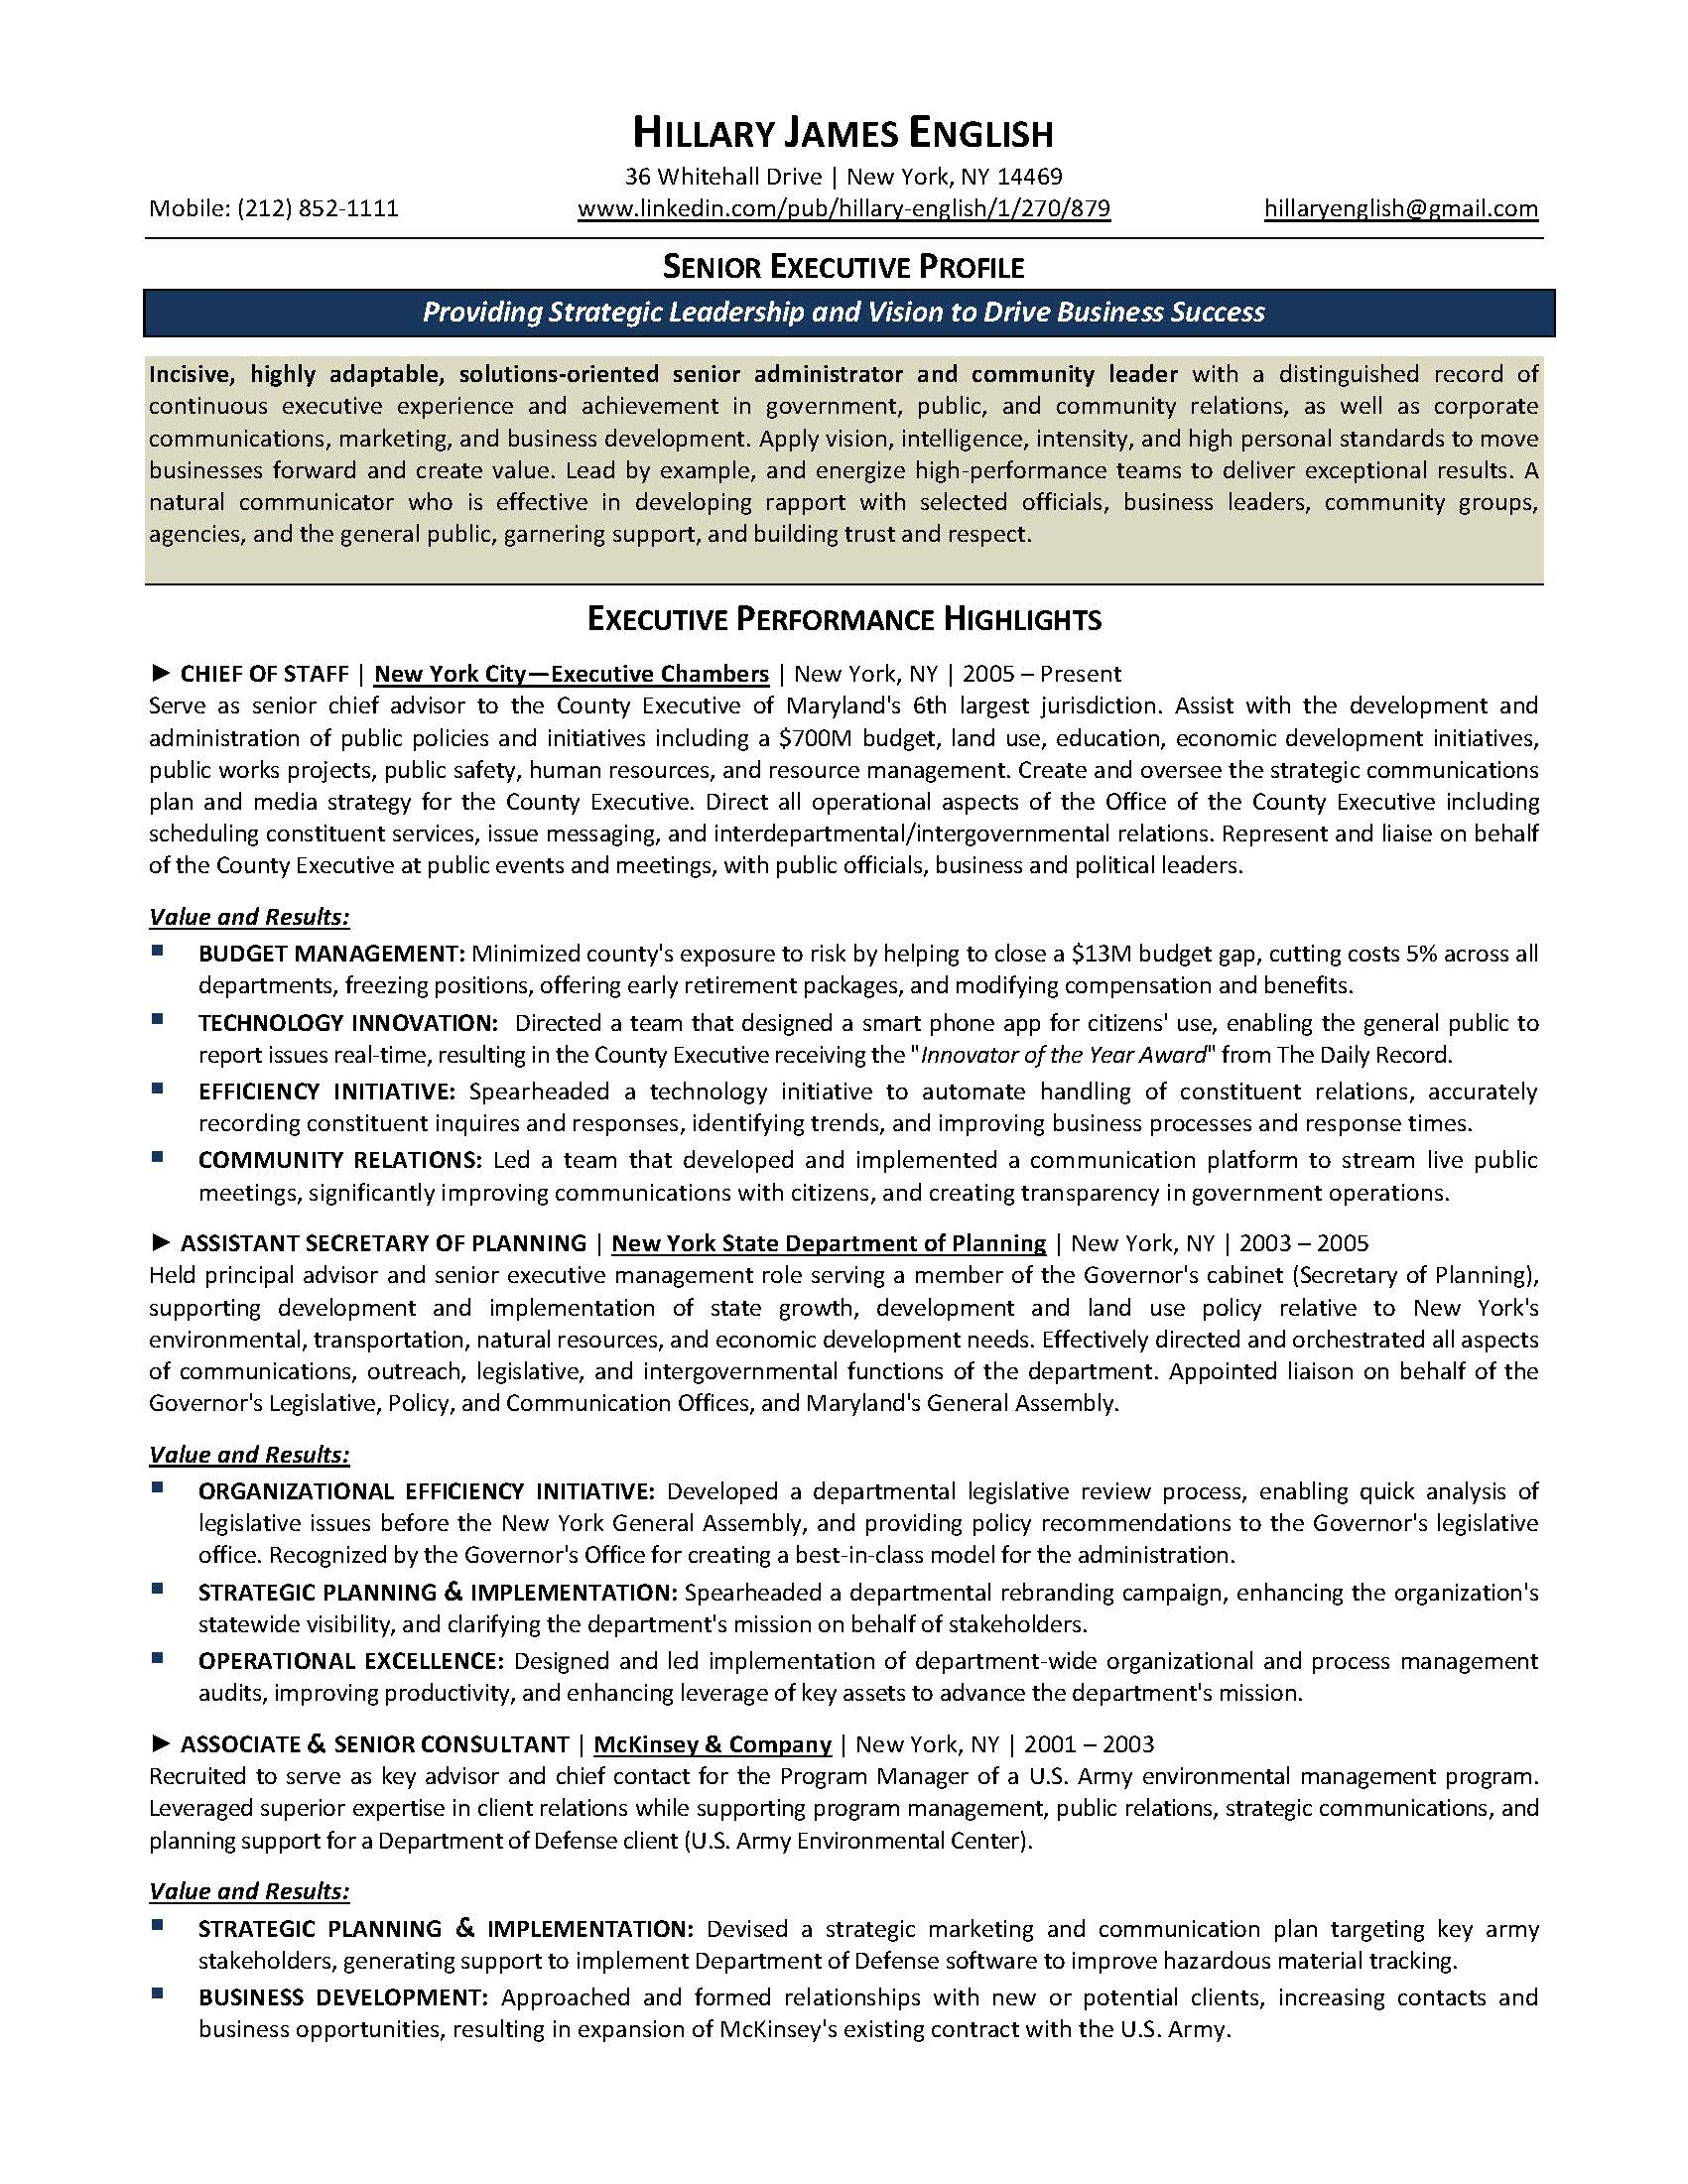 senior executive resume sample, provided by Elite Resume Writing Services